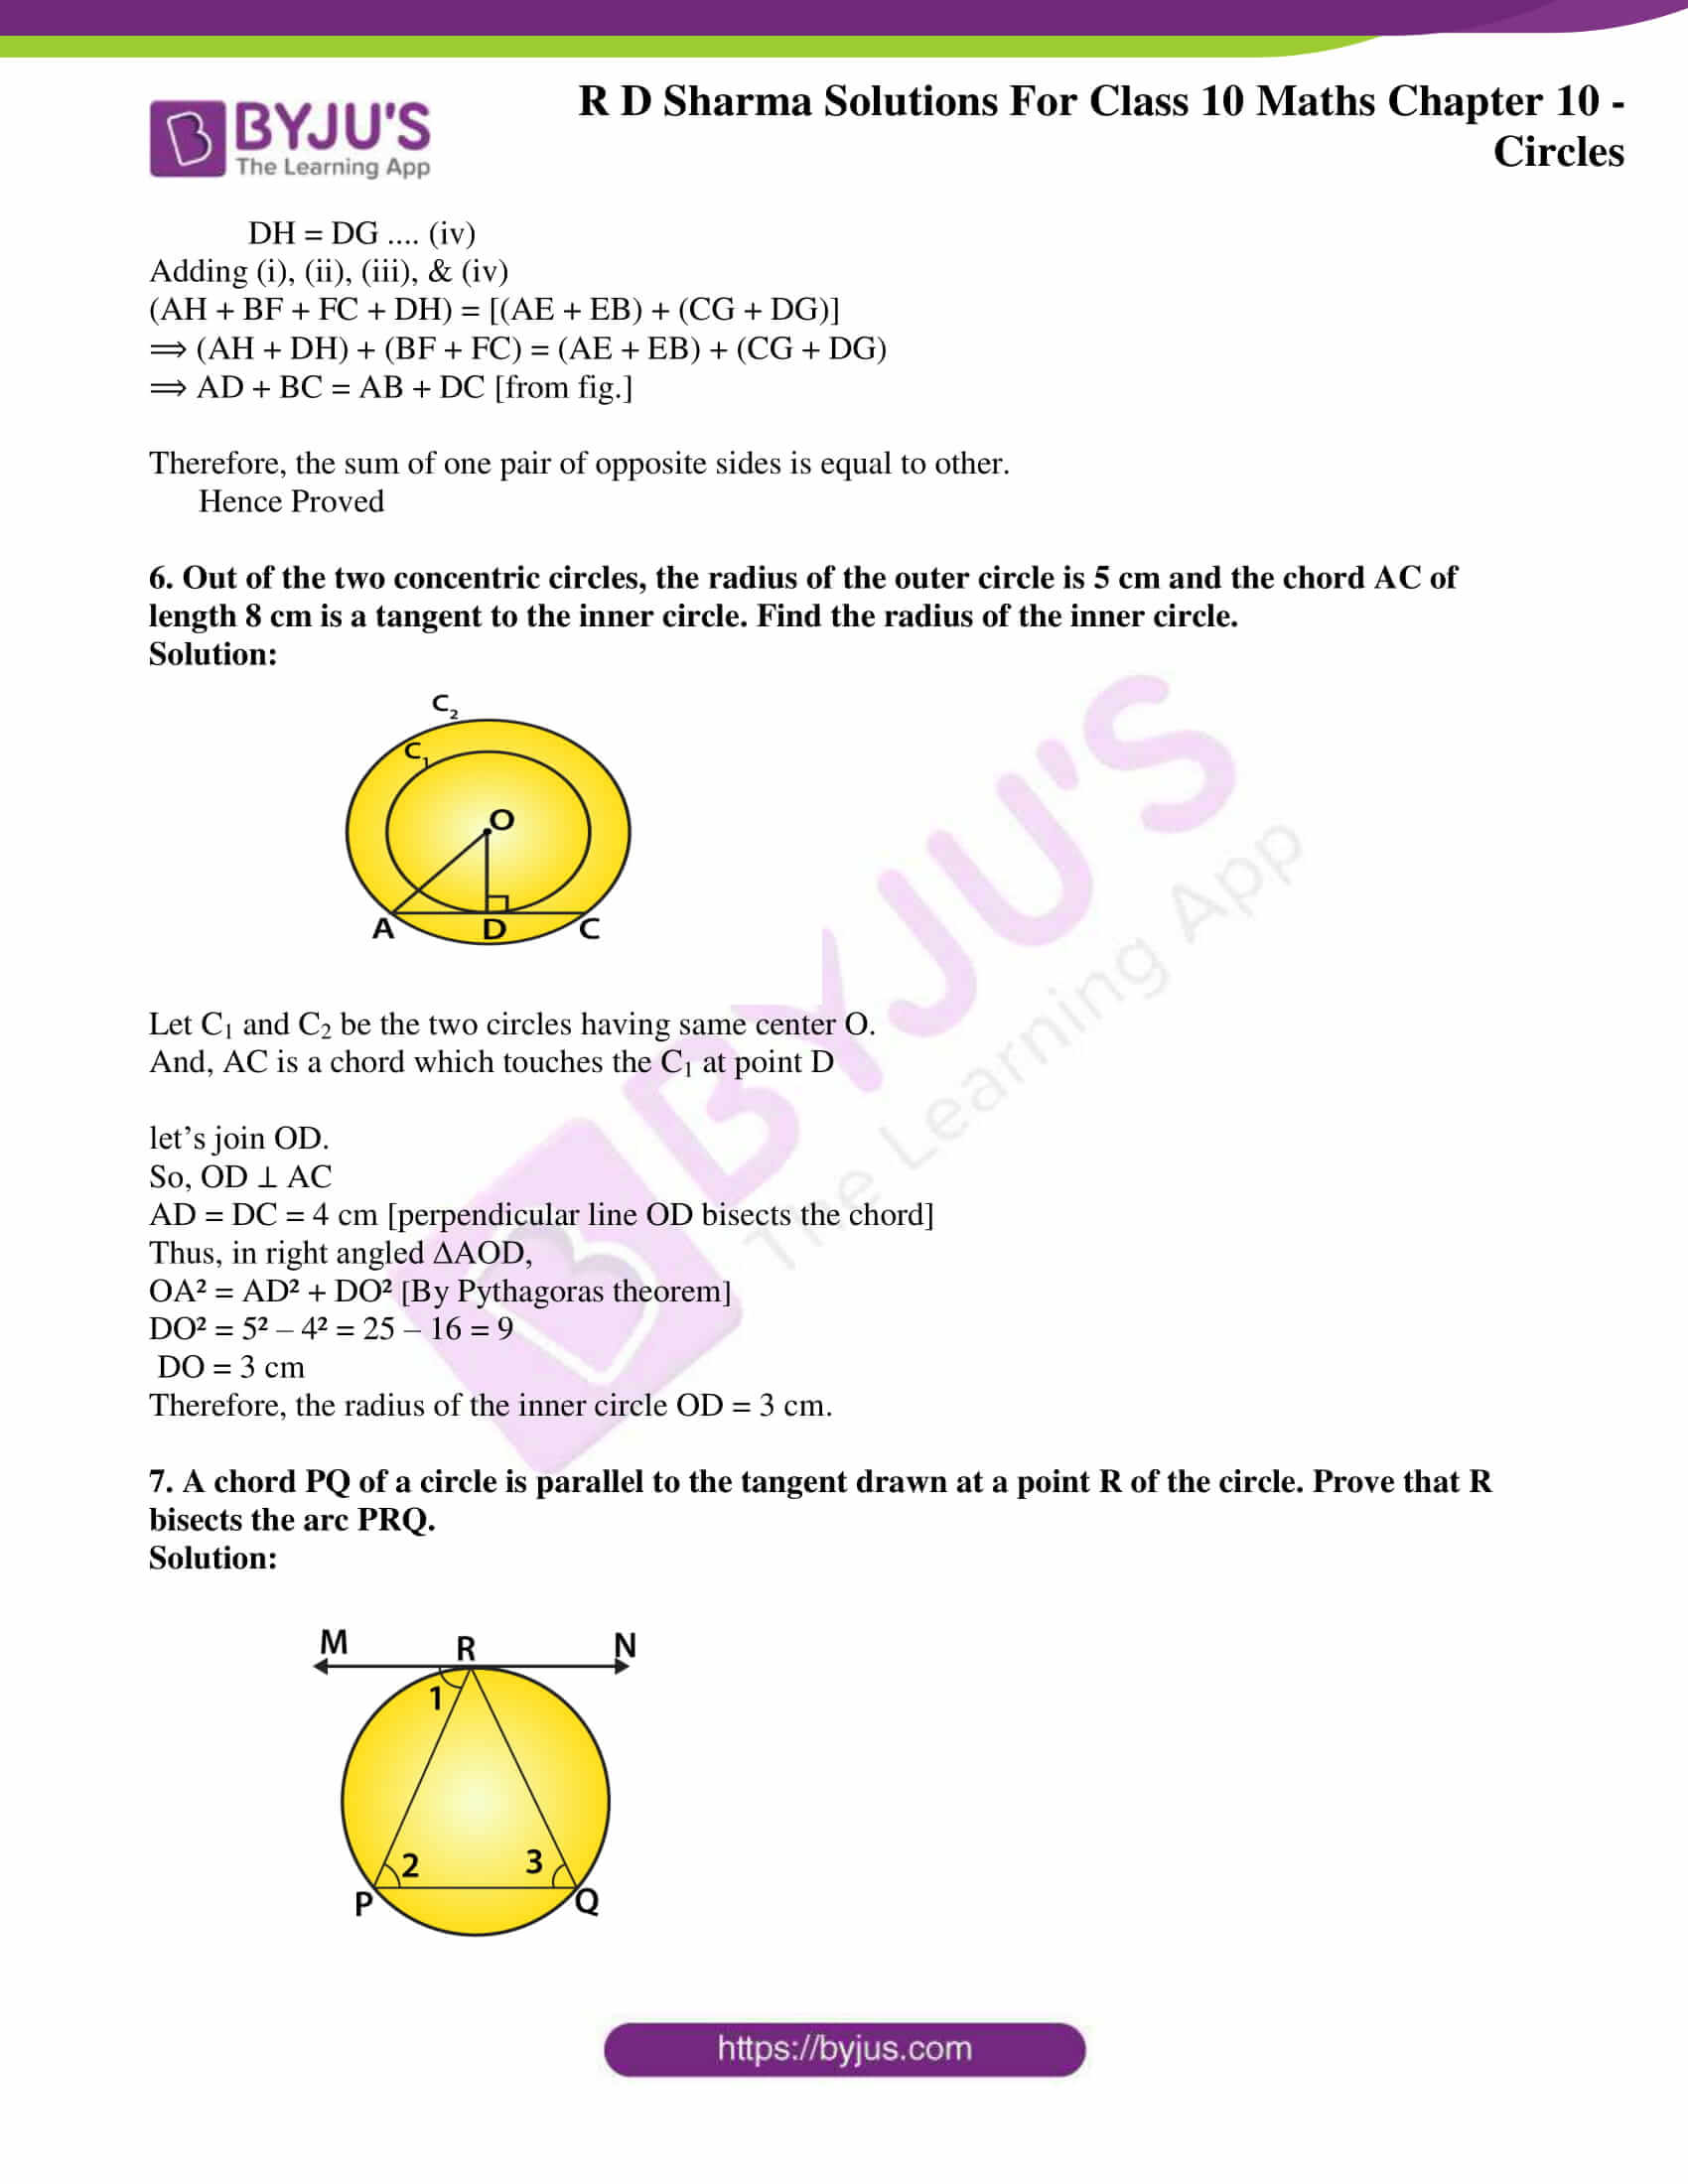 rd sharma class 10 chapter 10 circles solutions exercise 2 04